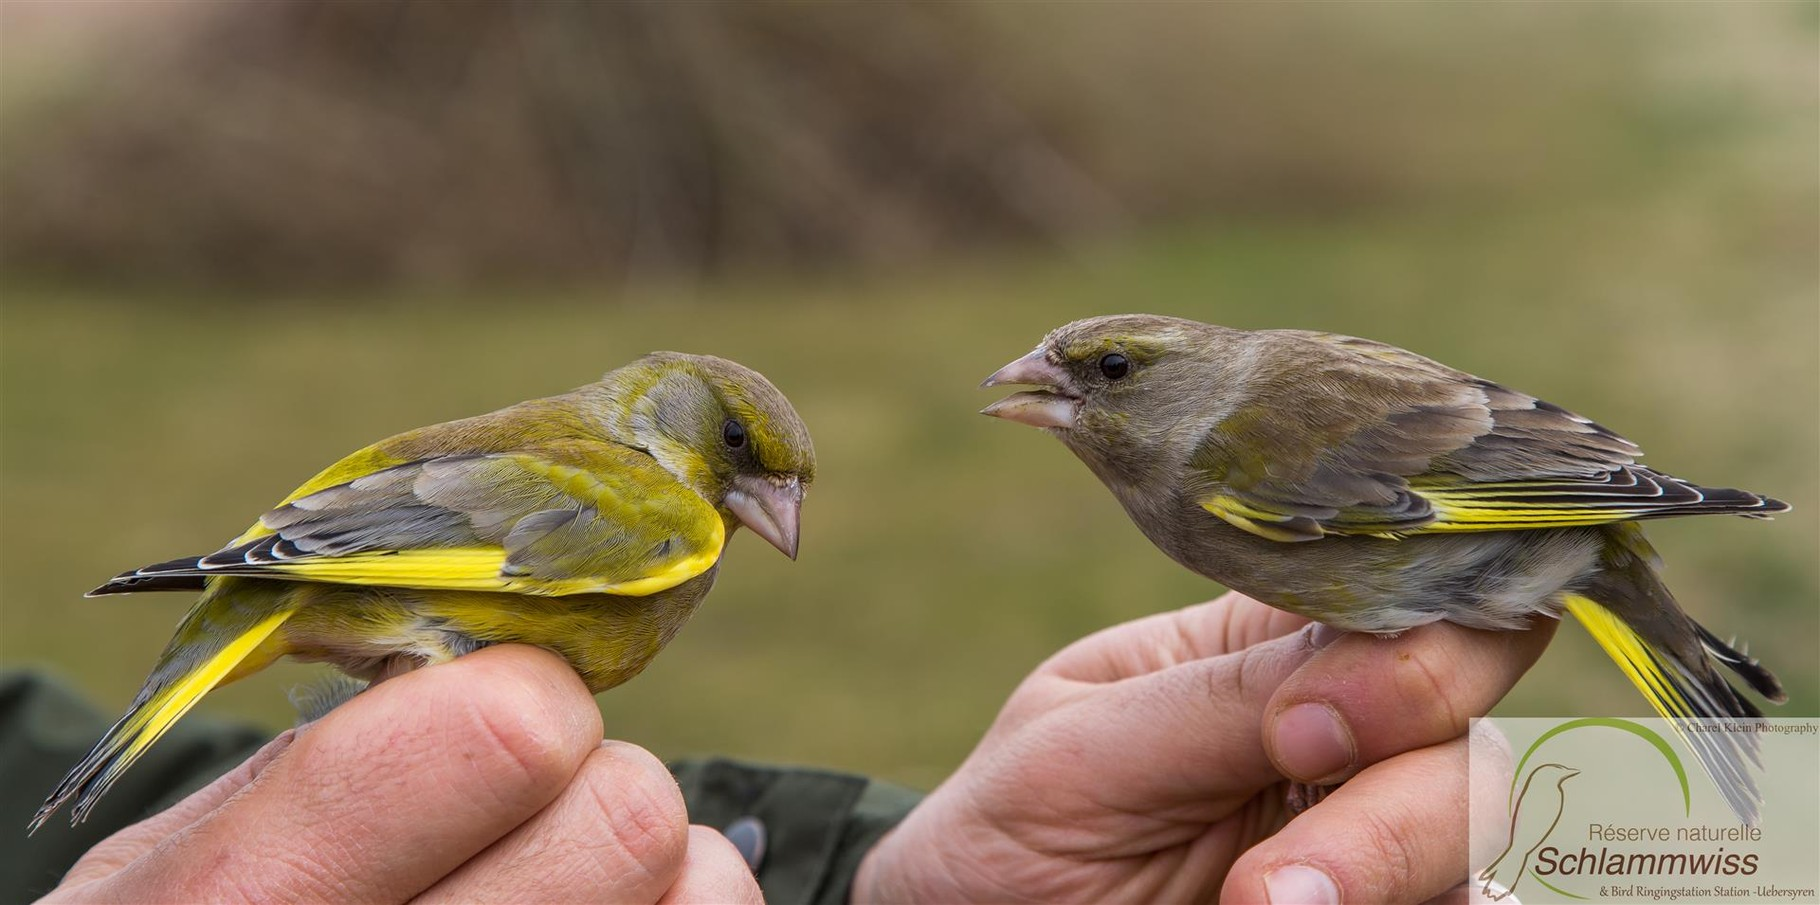 24.03 - Carduelis chloris male & female